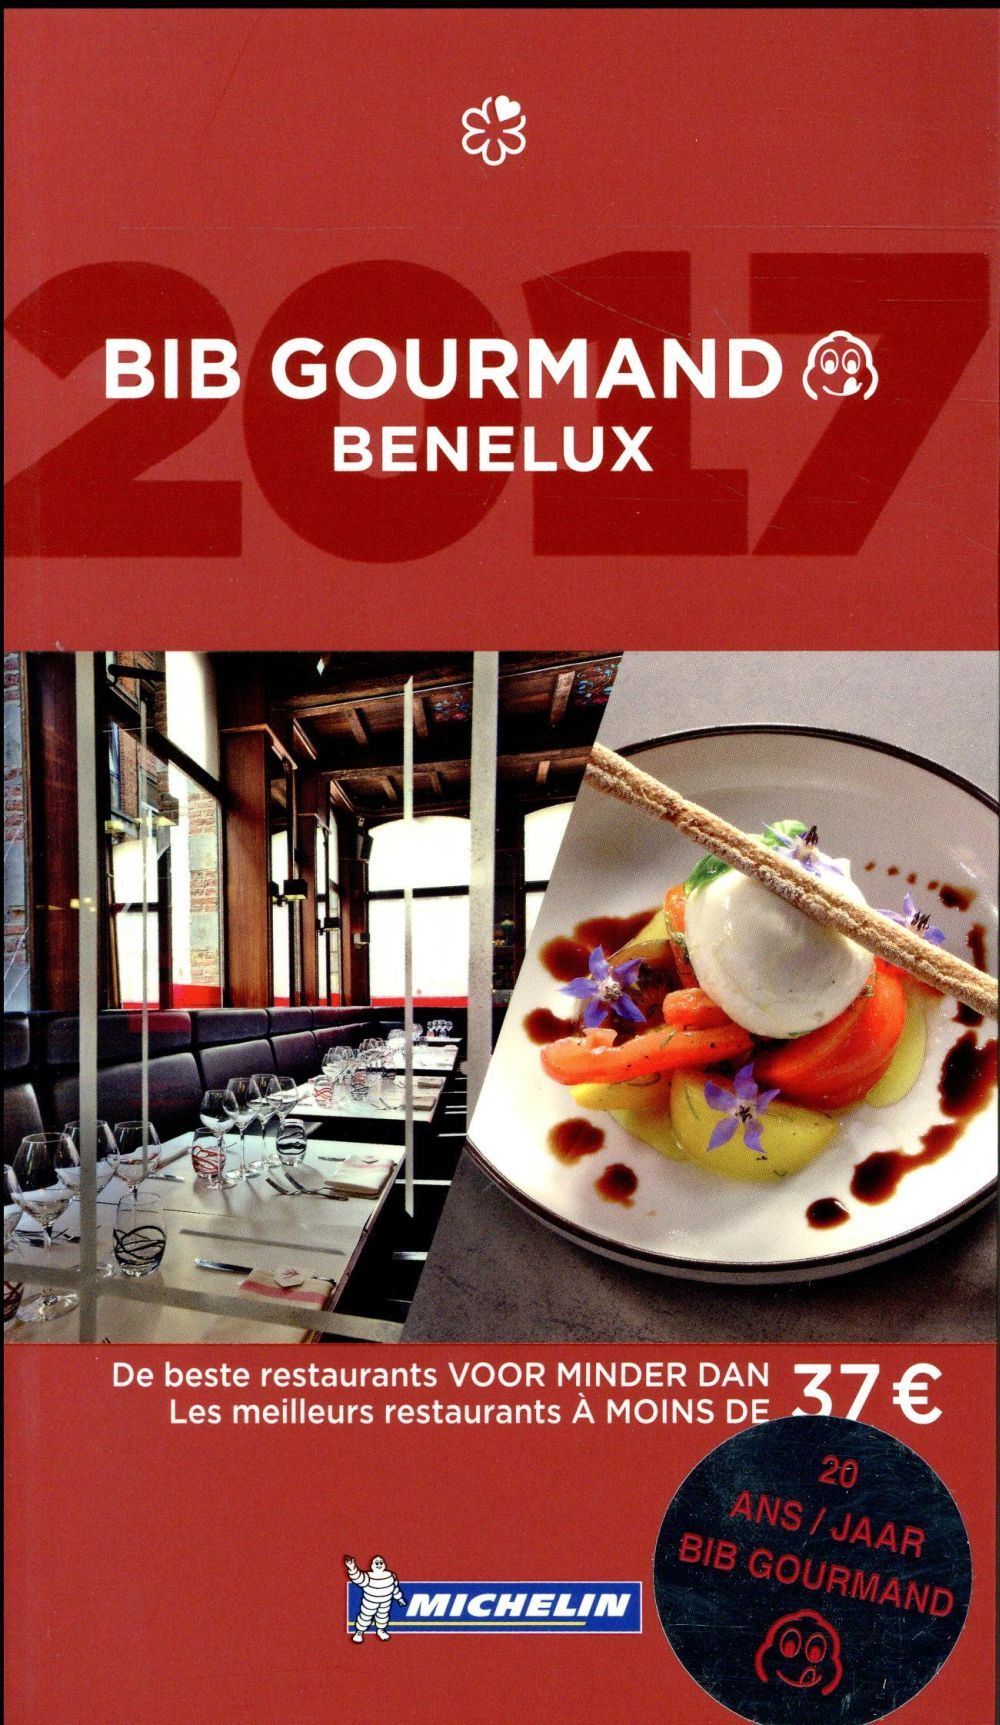 Guide rouge ; bib gourmand Benelux (édition 2017)